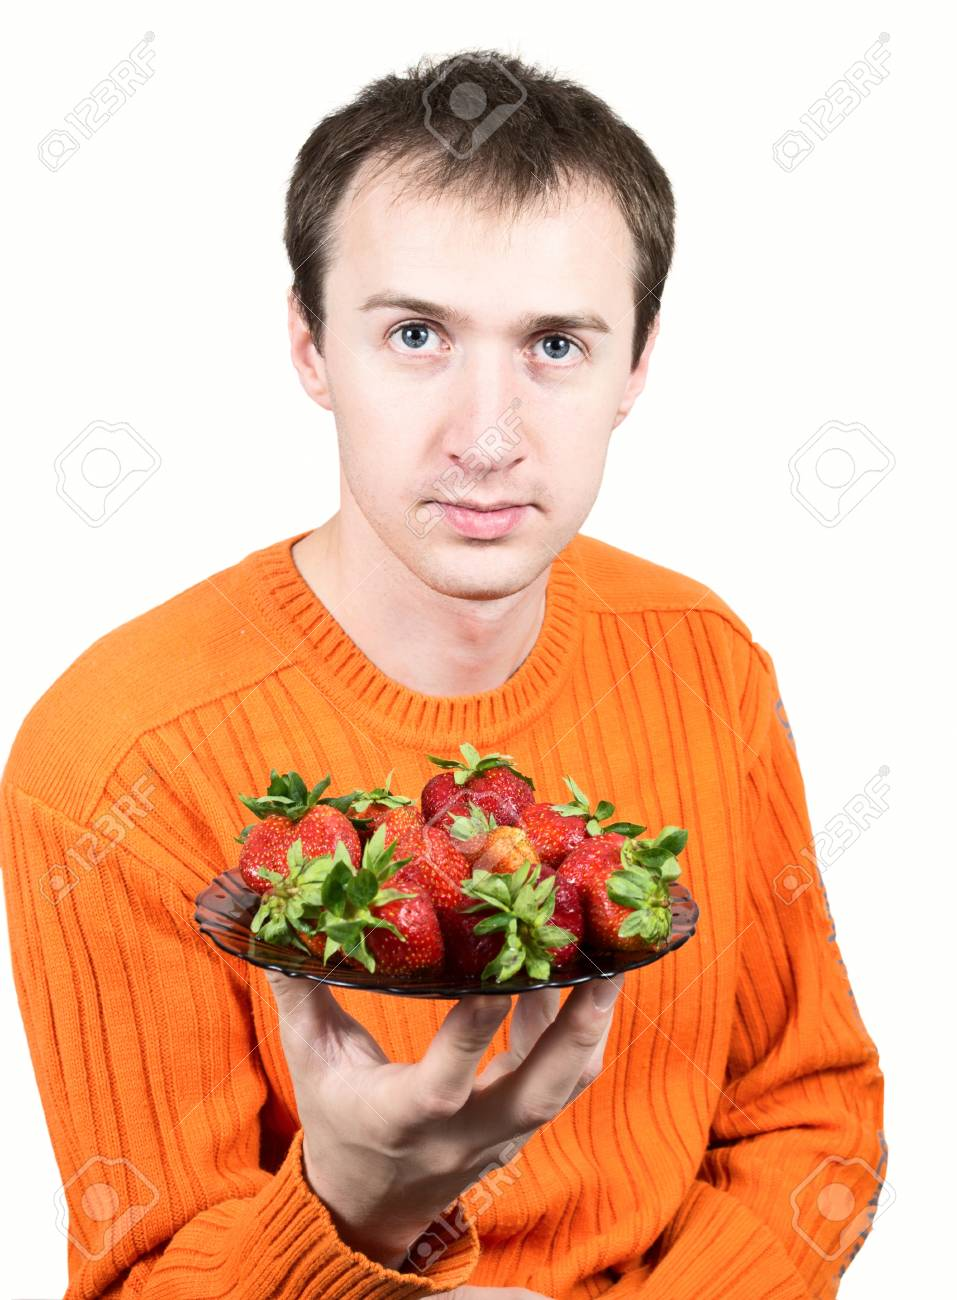 Young man holding a strawberry isolated on white background. Stock Photo - 12833466